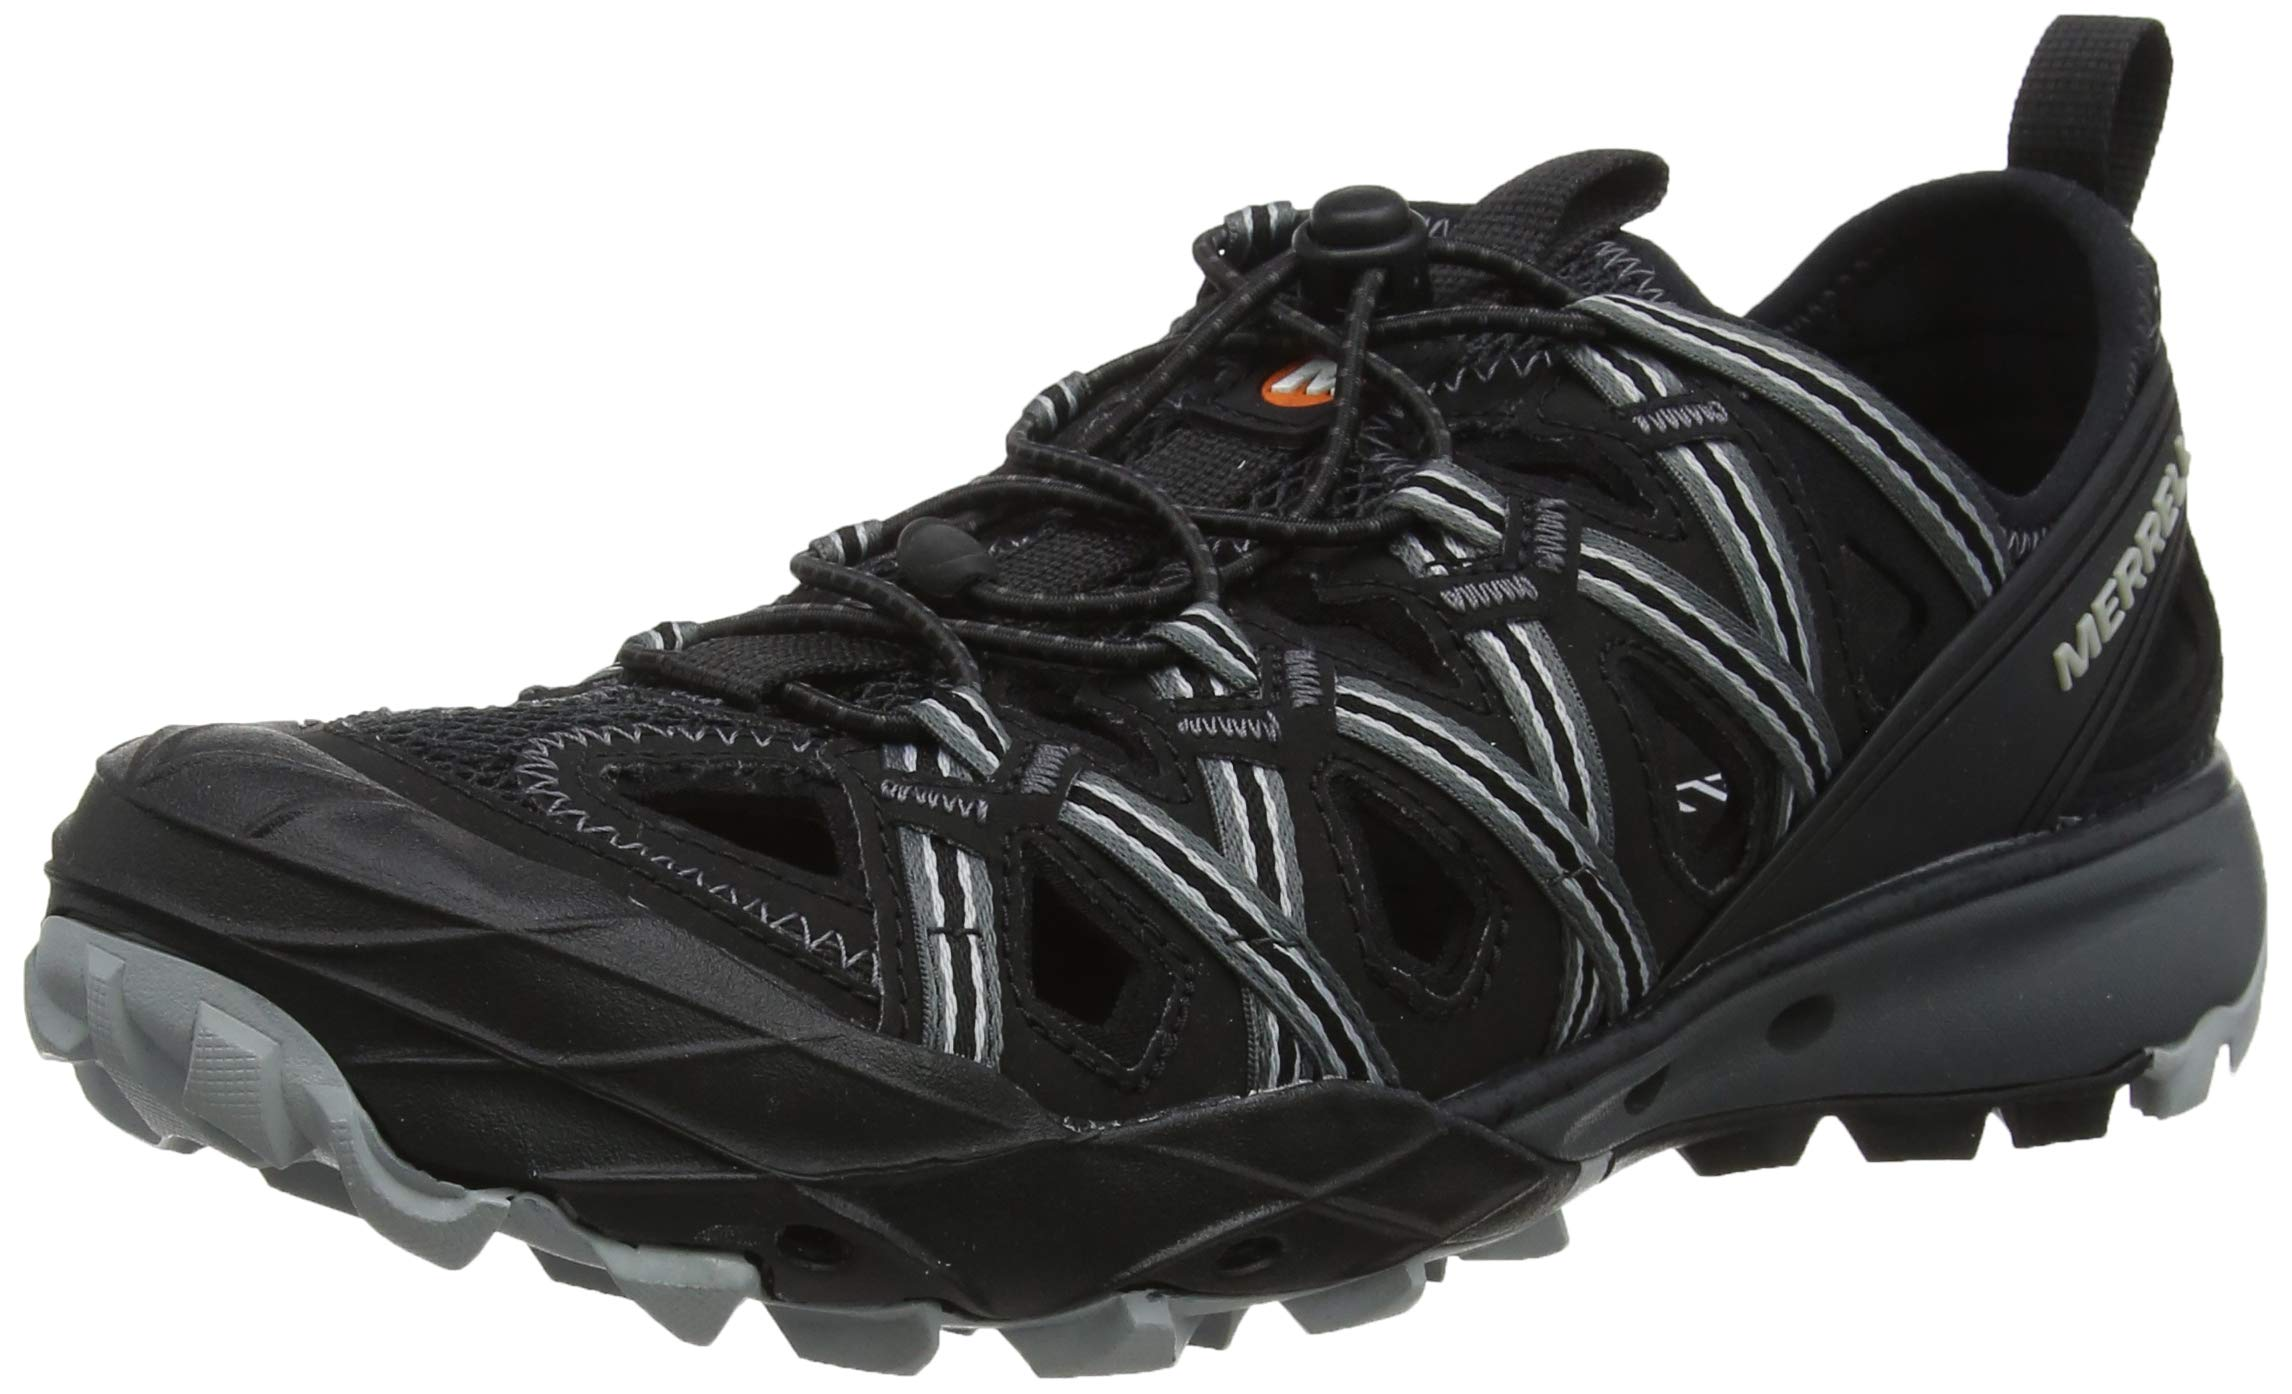 Merrell Men's Choprock Water Shoes, Black, 7 (41 EU)